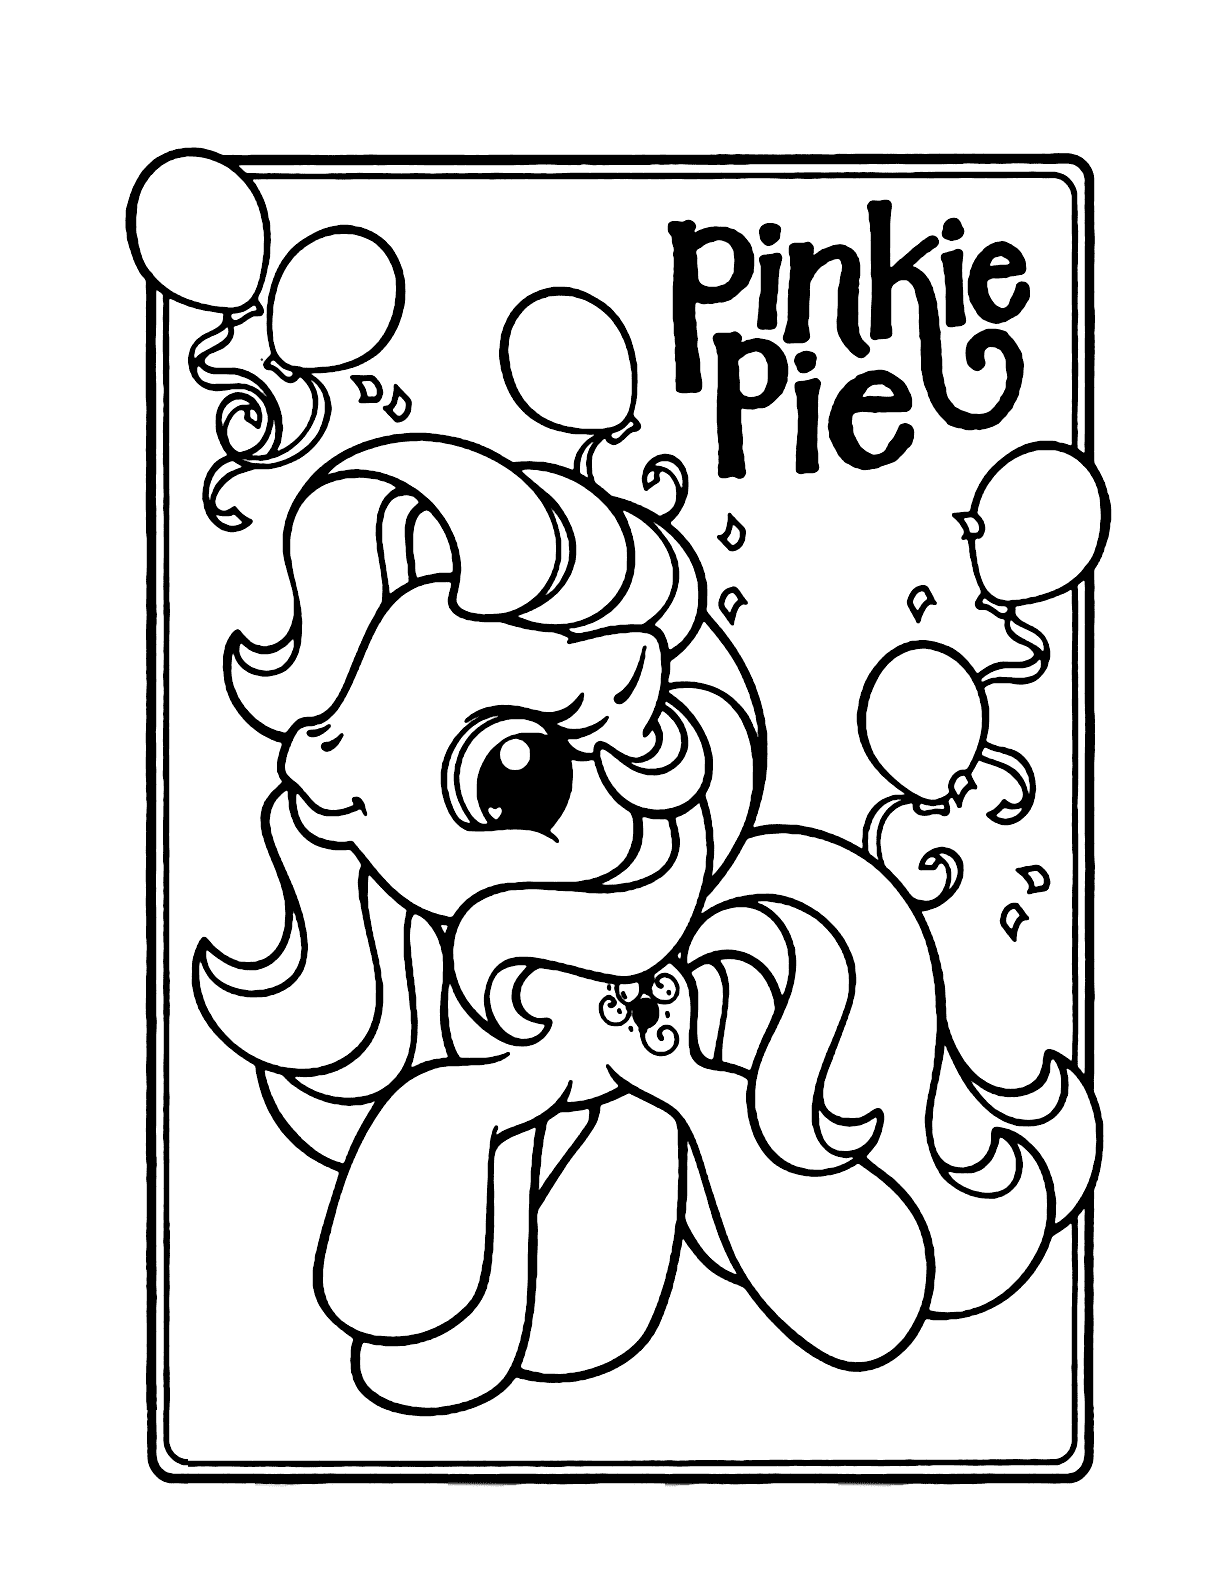 Pinkie Pie Coloring Page : pinkie, coloring, School, Little, Pinkie, Coloring, Coloring.rocks!